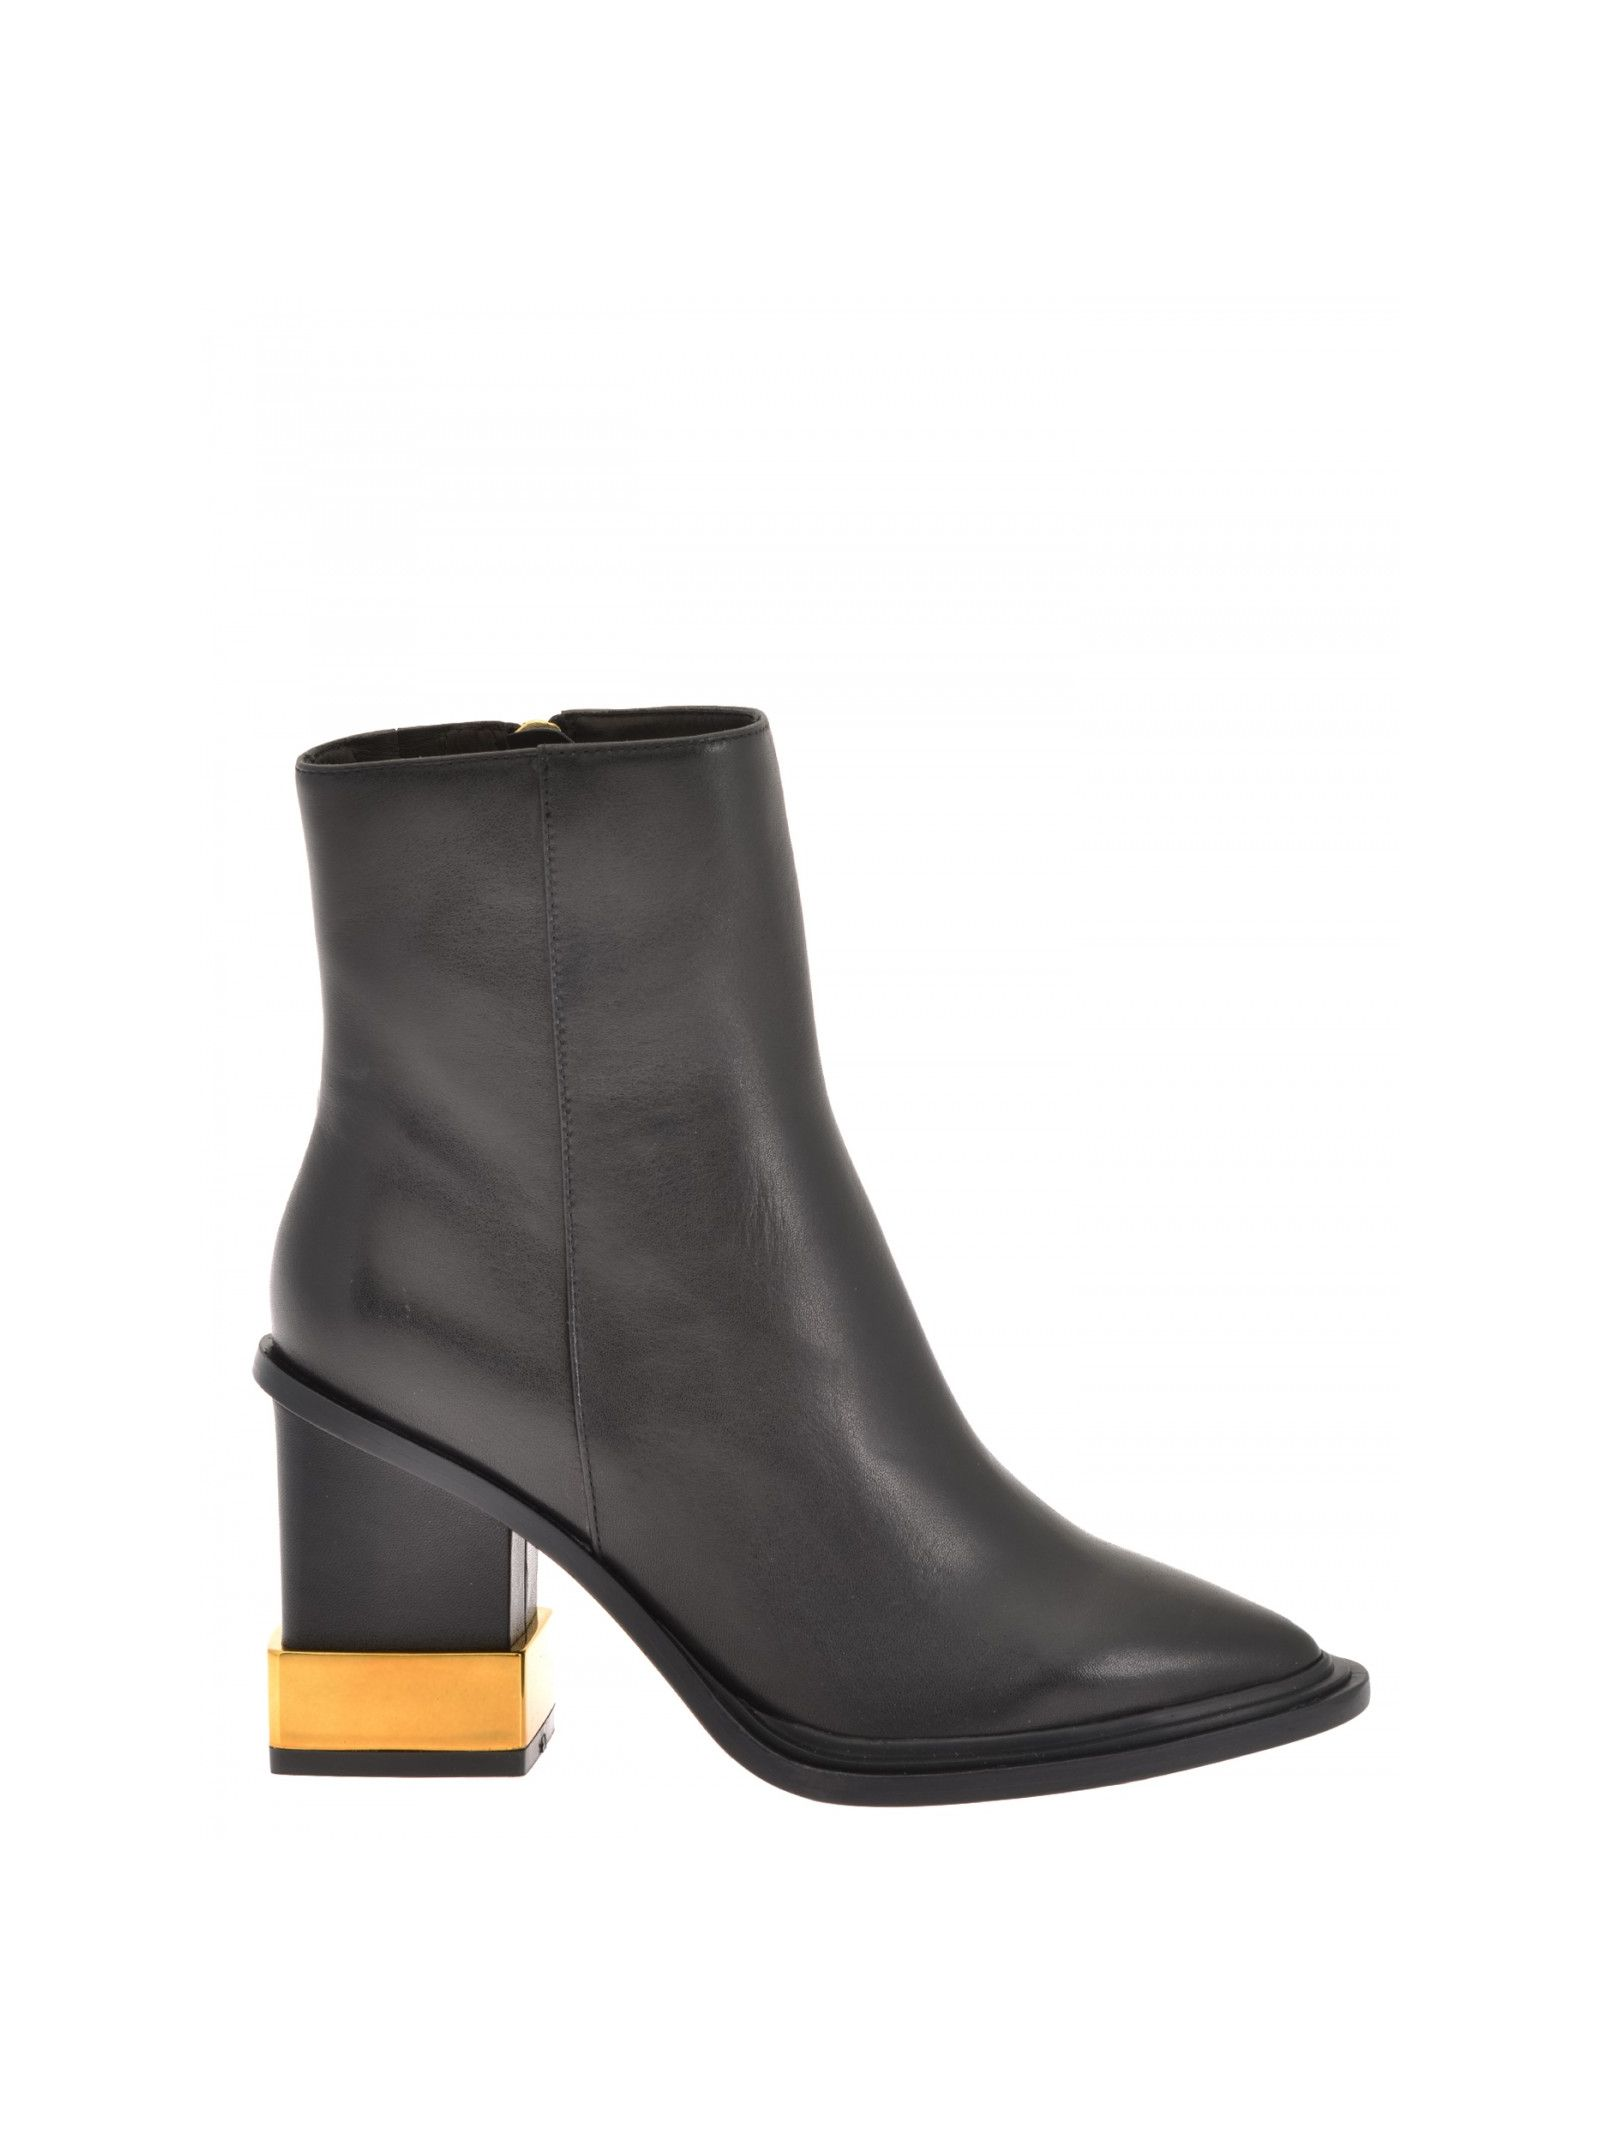 Smooth leather boots Hill: 8. 5 cm Sole: Leather Details: Smooth leather boots, Calf-height, Pointed toe, Side zip in gold-tone metal with charm, Block heels with gold-tone metal detailing, Leather lining